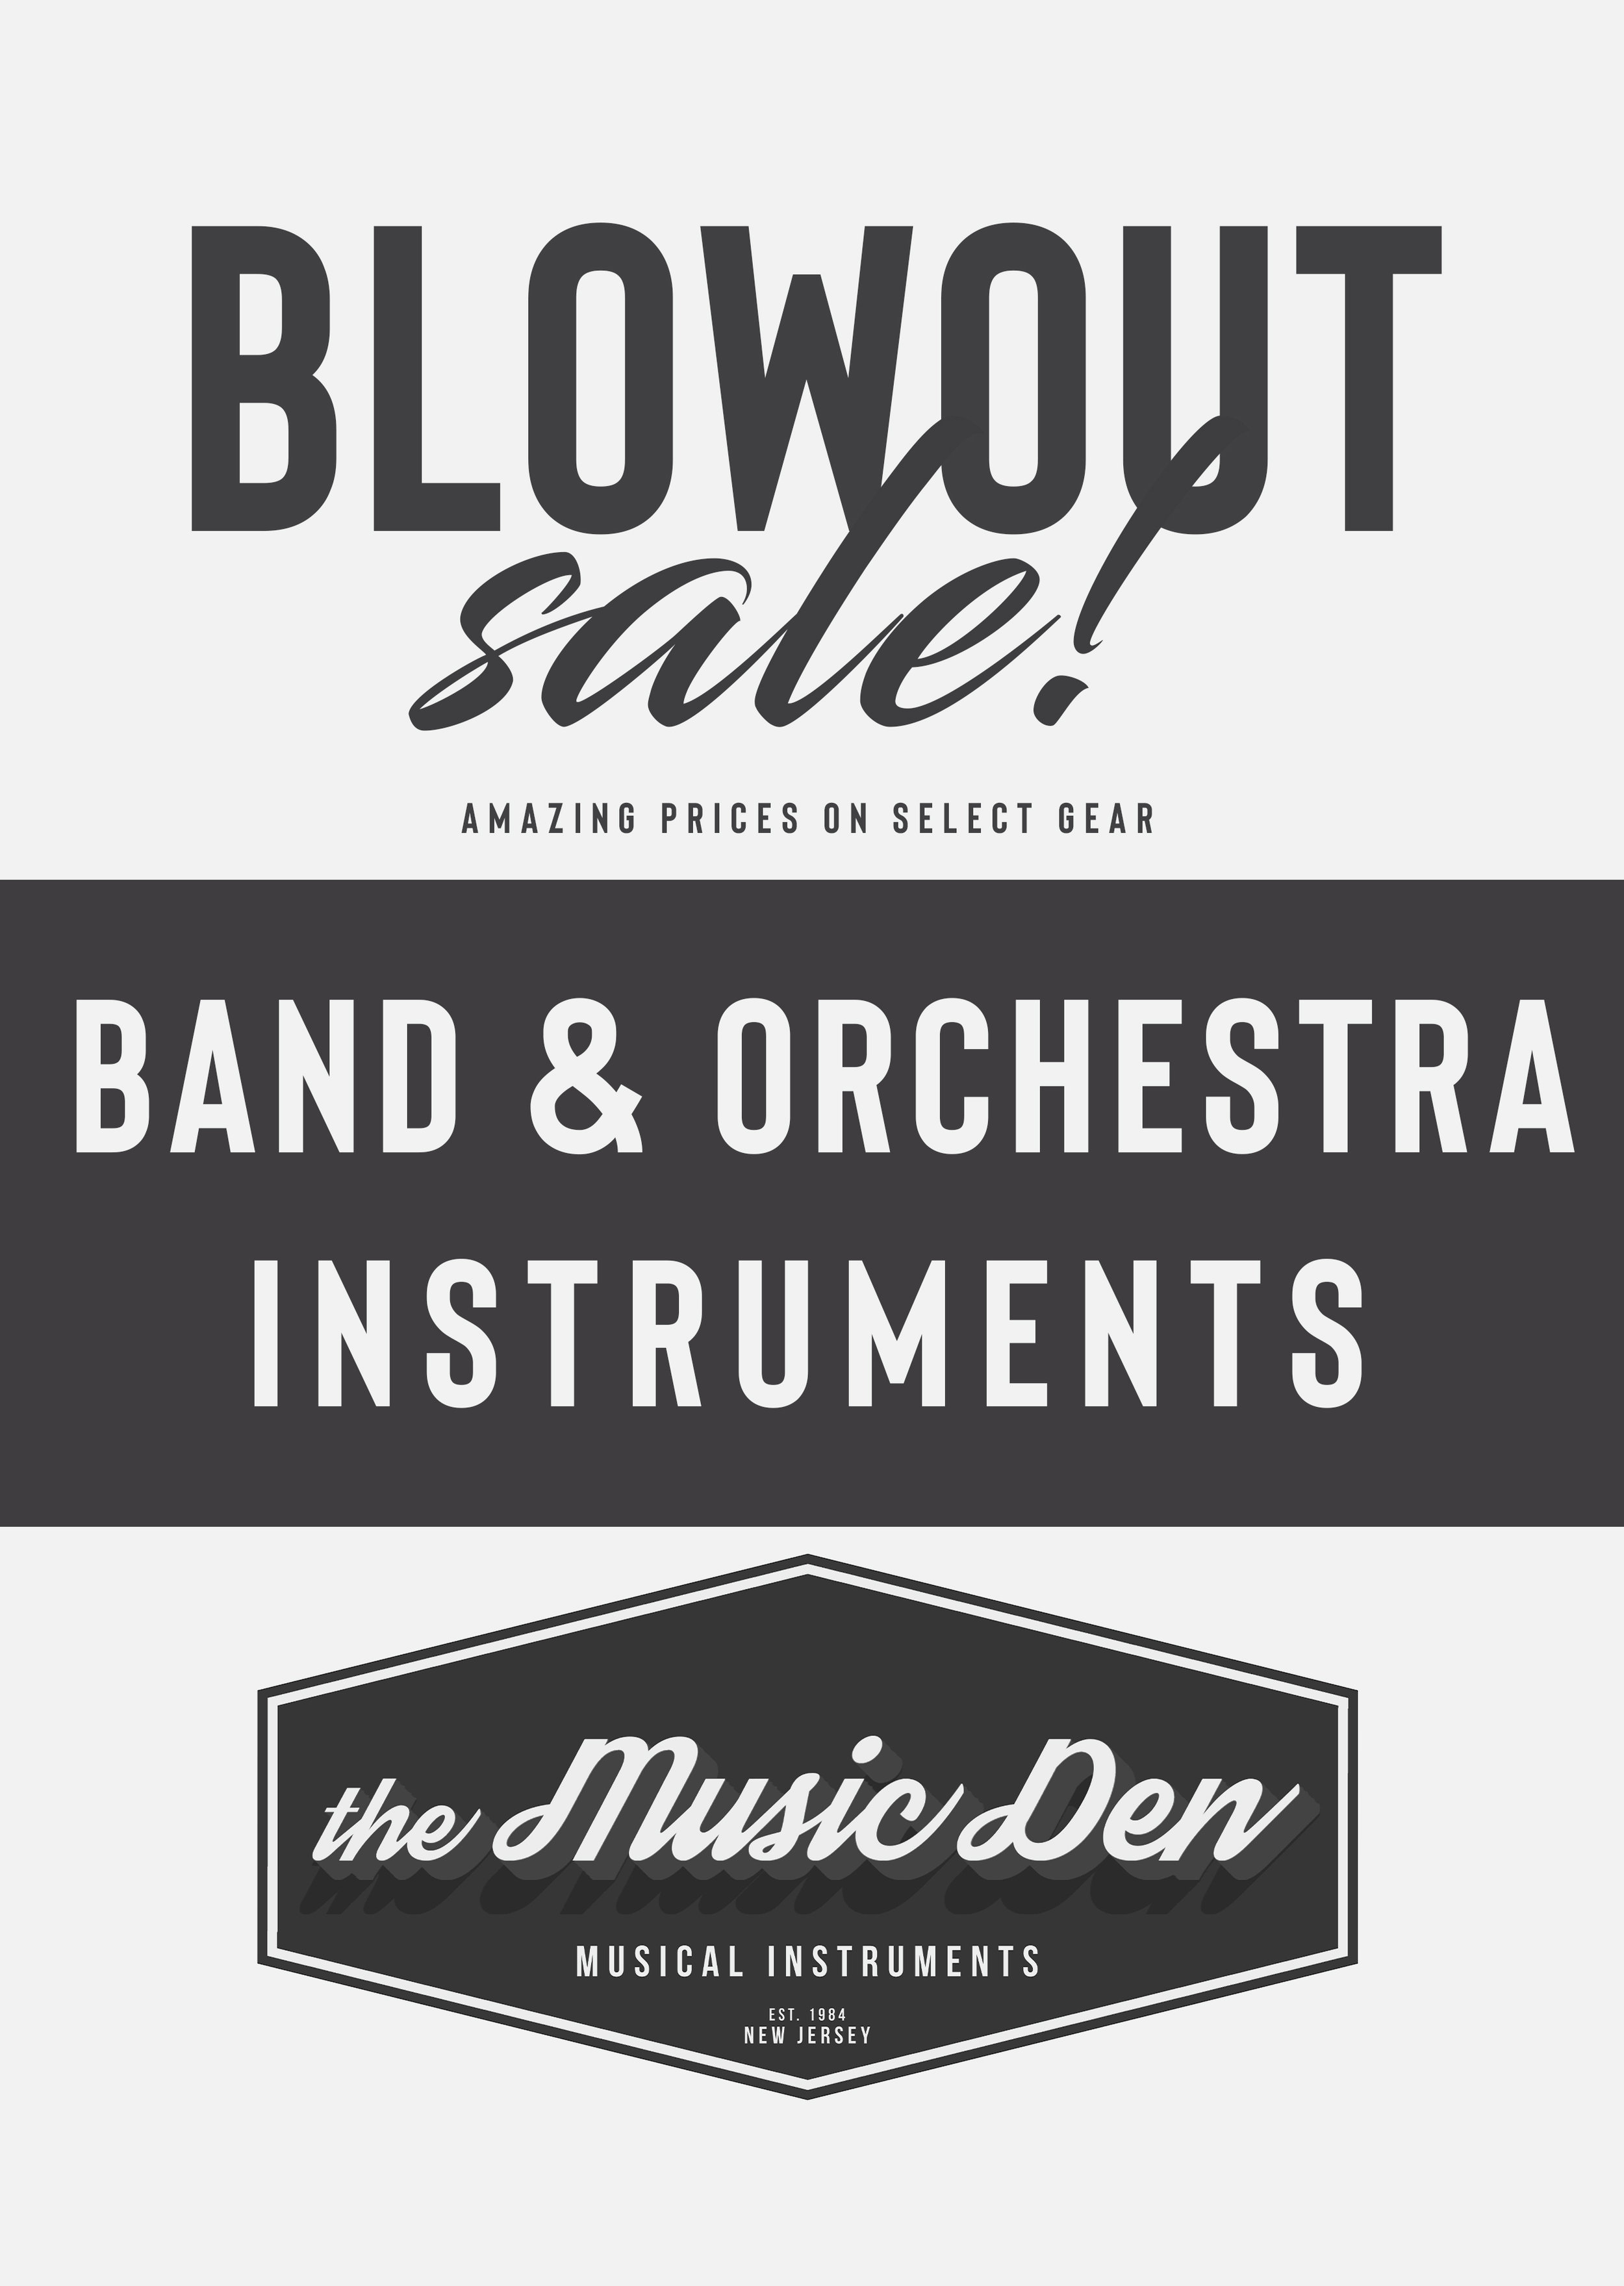 band-orch-instrument-sale.jpg